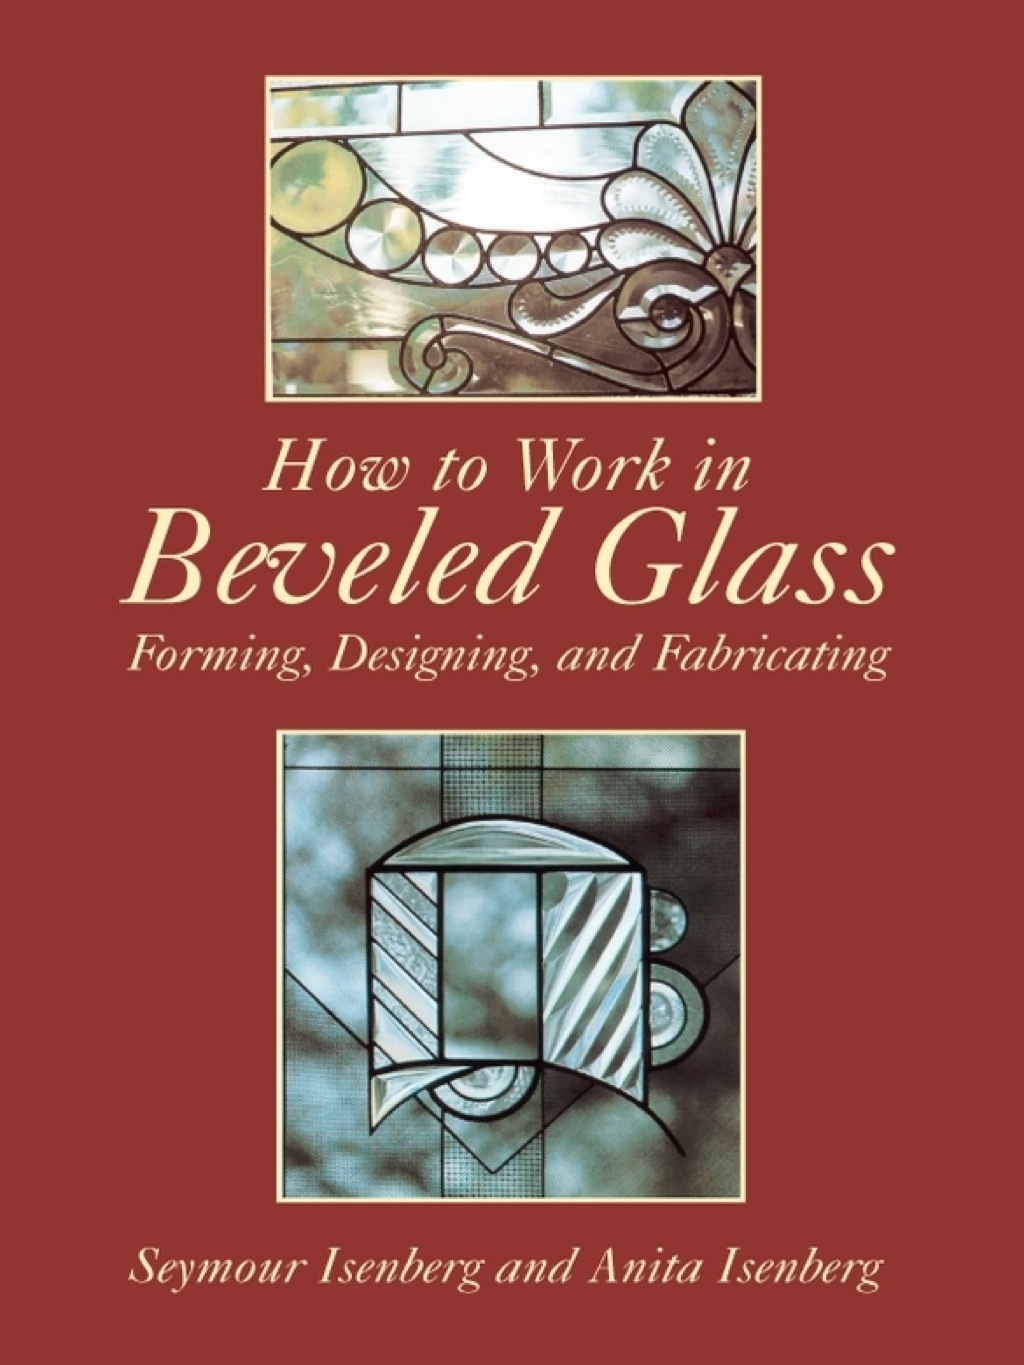 How To Work In Beveled Glass (ebook)